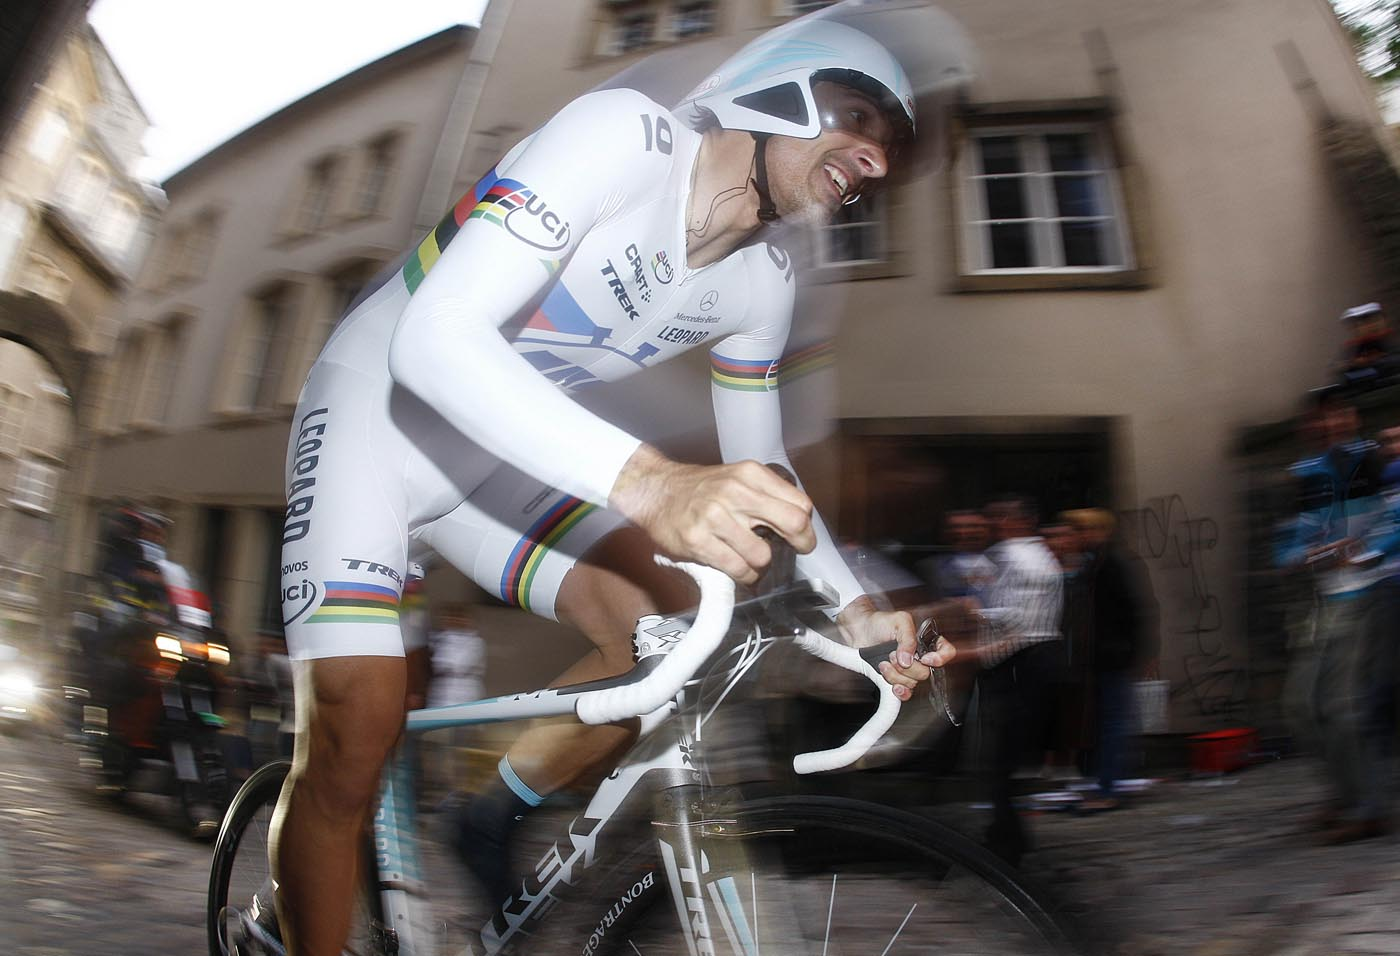 Fabian Cancellara wins Tour of Luxembourg 2011, prologue